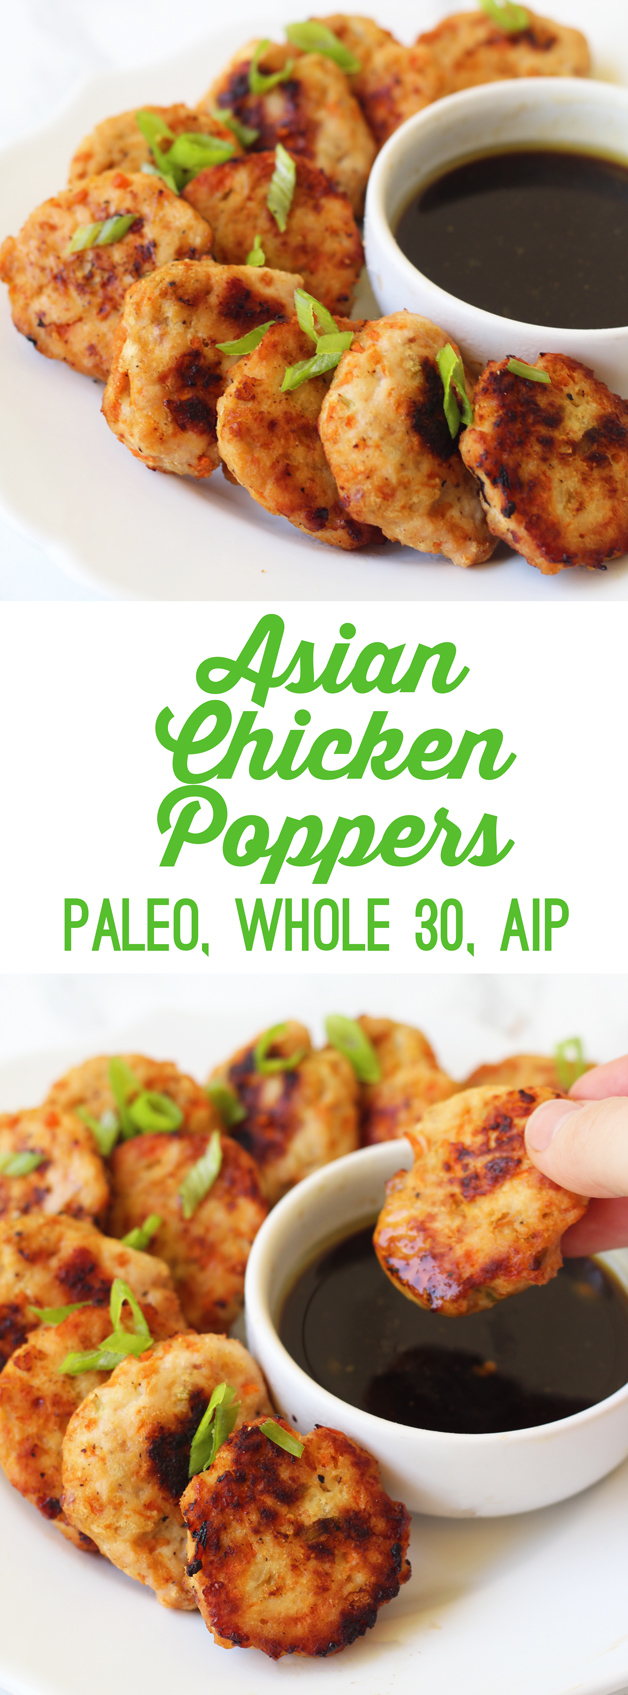 Asian Chicken Poppers (Paleo, Whole 30, AIP)